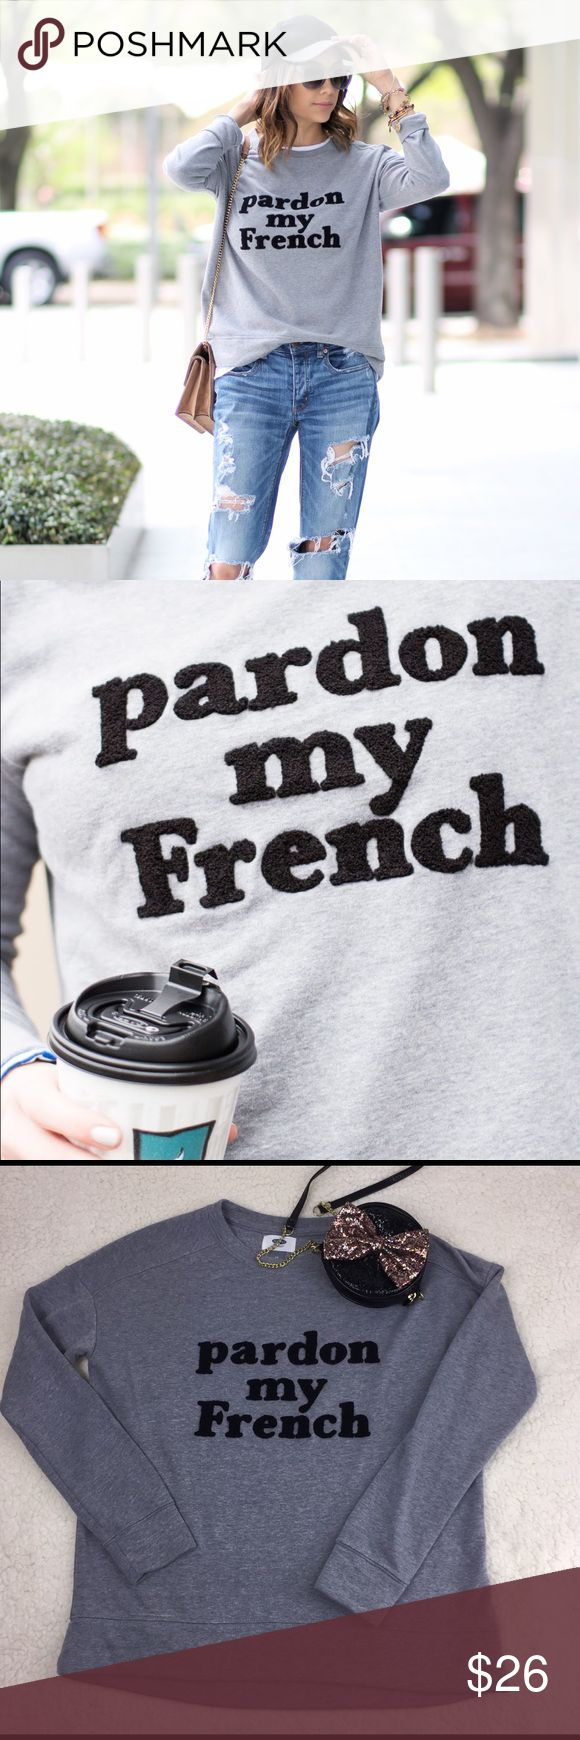 """Old navy SX Size Pardon My French Sweatshirt. Size is a Sz• Textured lettering • High low hem• Pit to Pit 21""""•Length 25"""" Back 24"""" front approx • Sleeves 19"""" from Pit to hem• Fabric 58% Cotton, 42% Polyester •Mint Condition • Credit pic to Daily Craving• Note: care tag and Composition is been cut• Fast Shipping • no trades• 🖤🖤 Old Navy Tops Sweatshirts & Hoodies"""